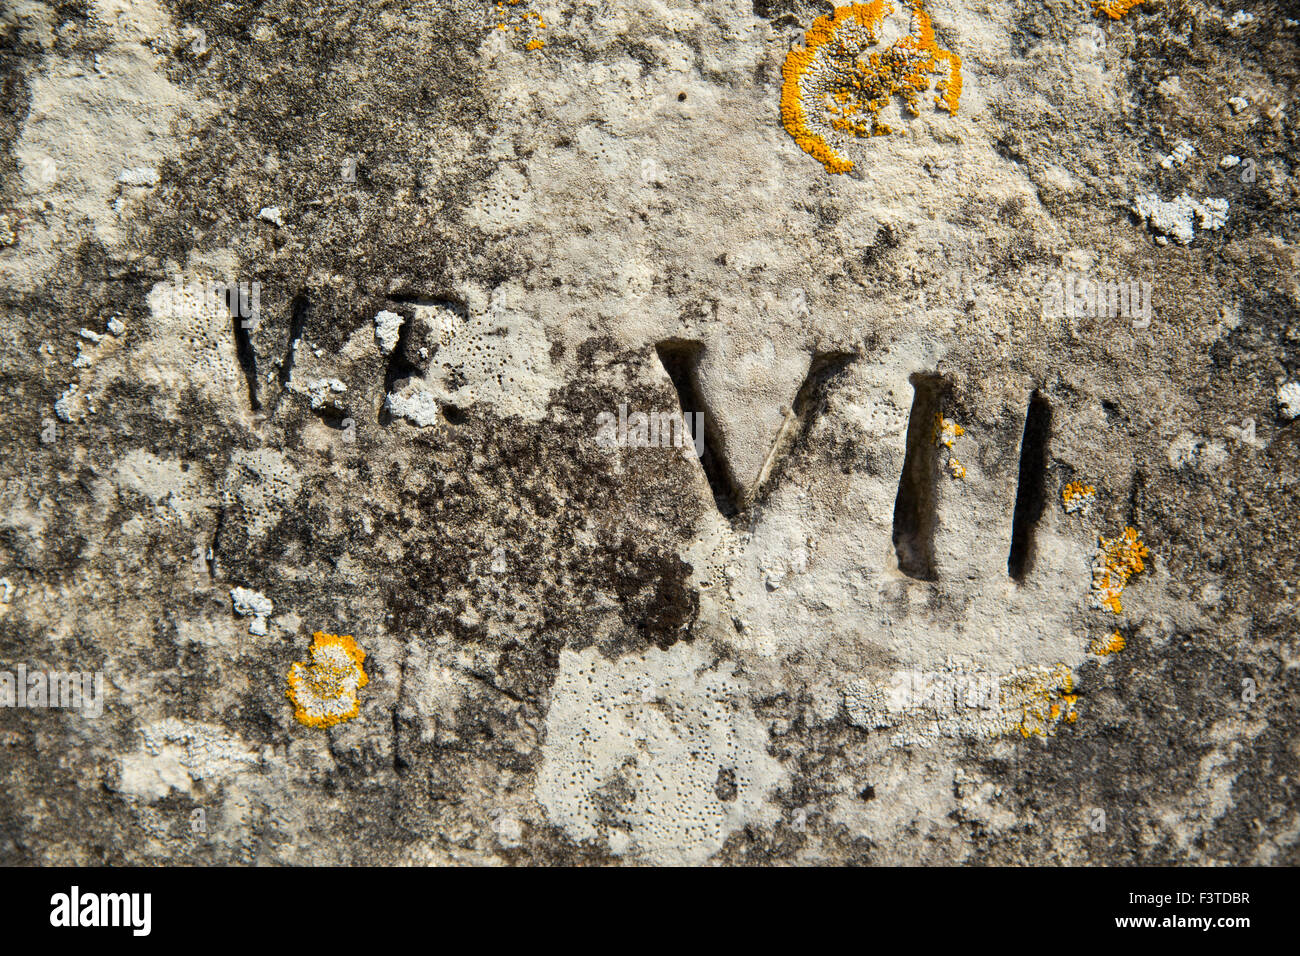 Roman numerals on wall La Rochelle in France - Stock Image